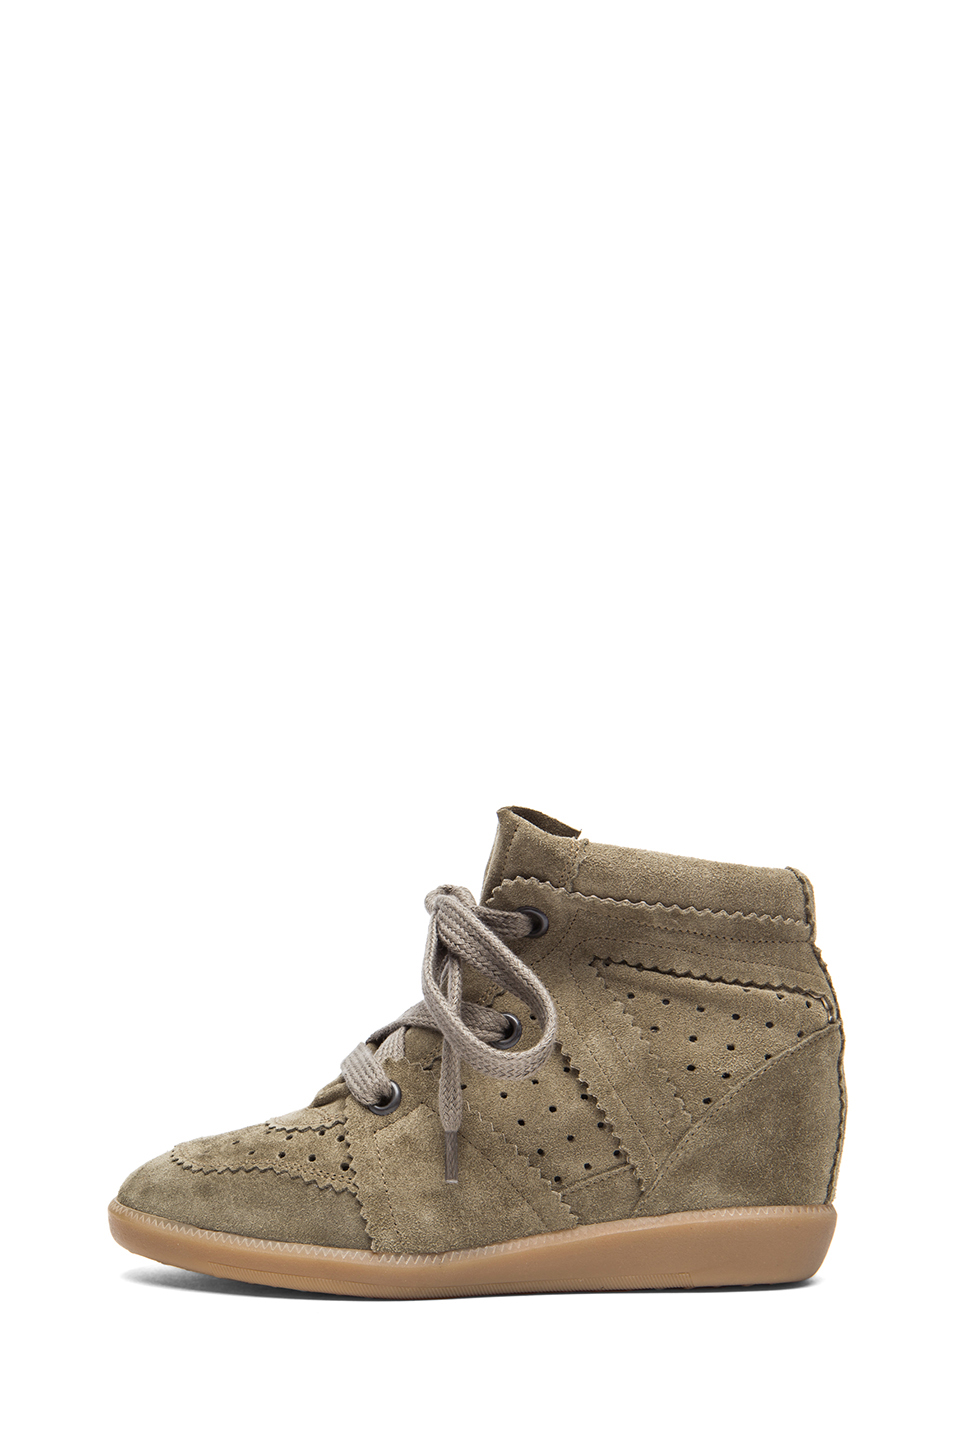 Isabel Marant|Bobby Calfskin Velvet Leather Sneaker in Taupe